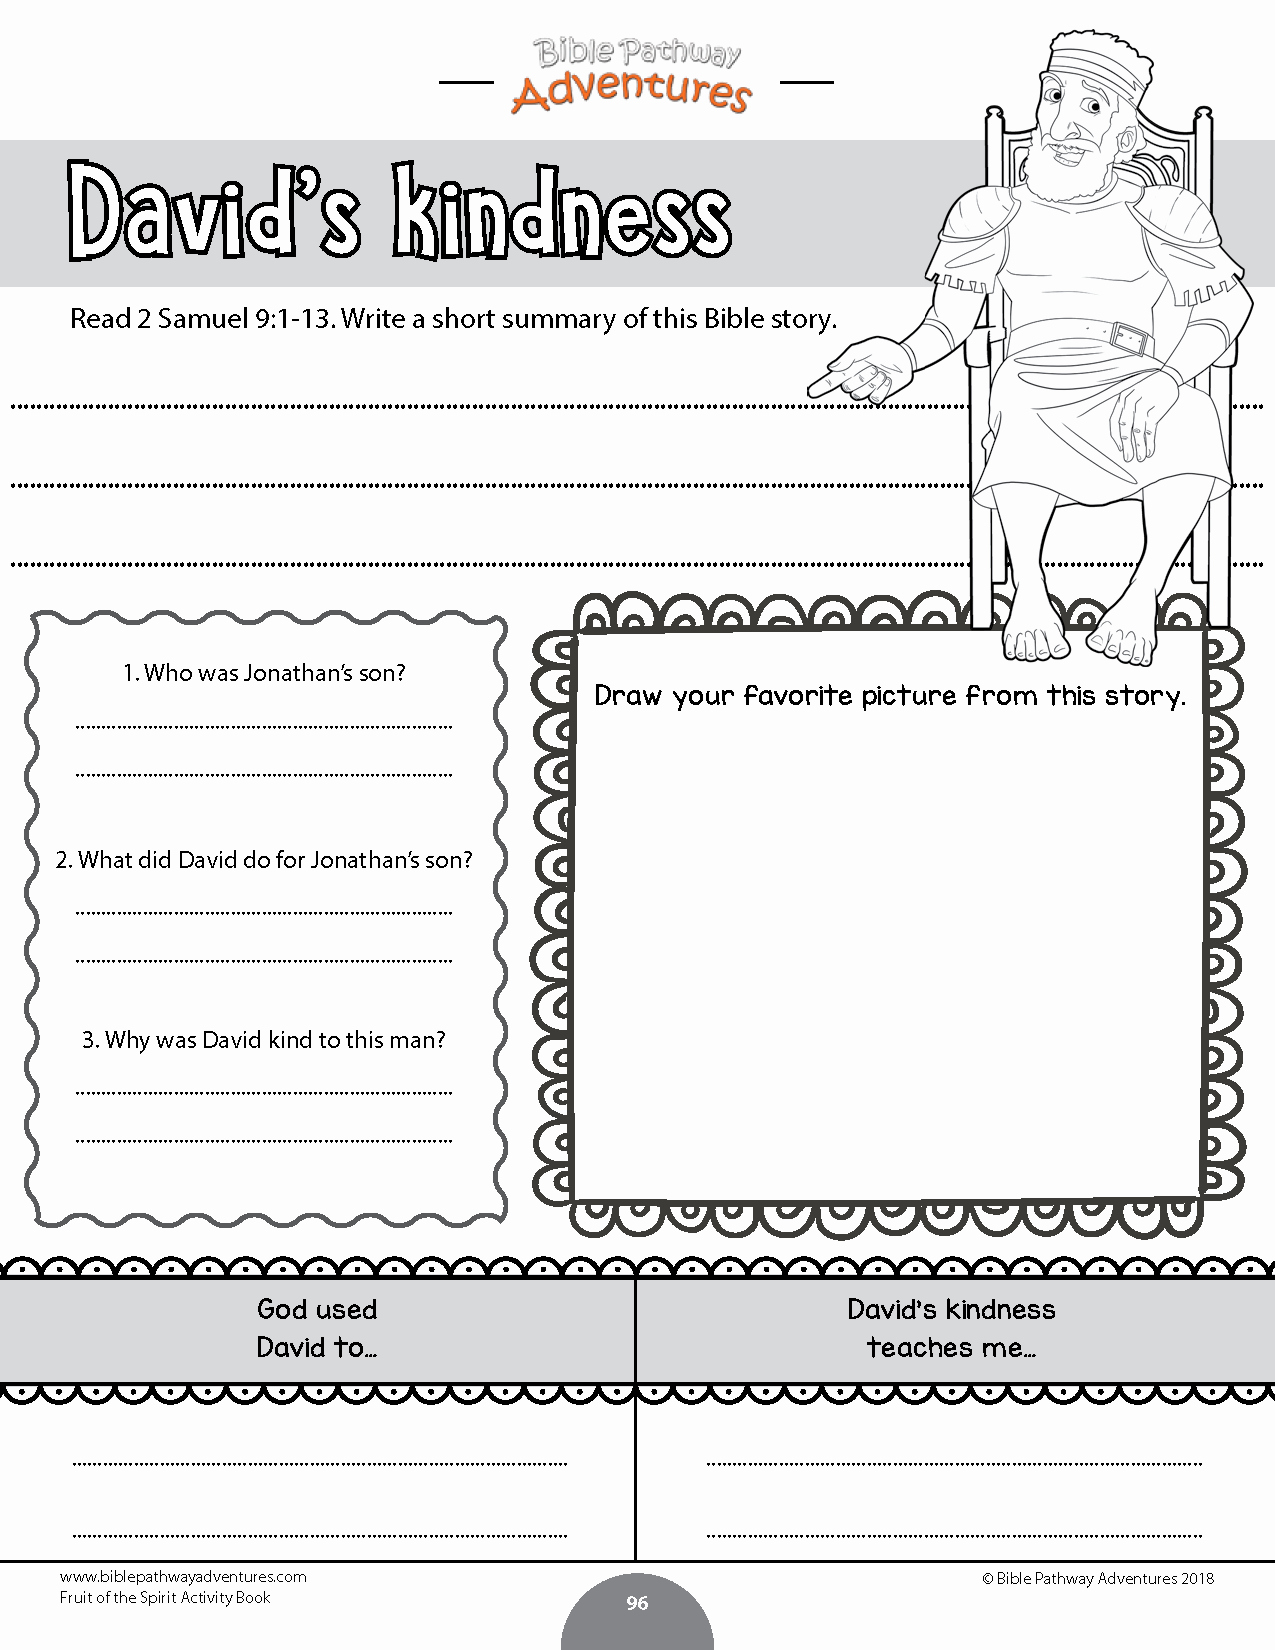 Fruits Of the Spirit Worksheet New Fruit Of the Spirit Coloring Activity Book – Bible Pathway